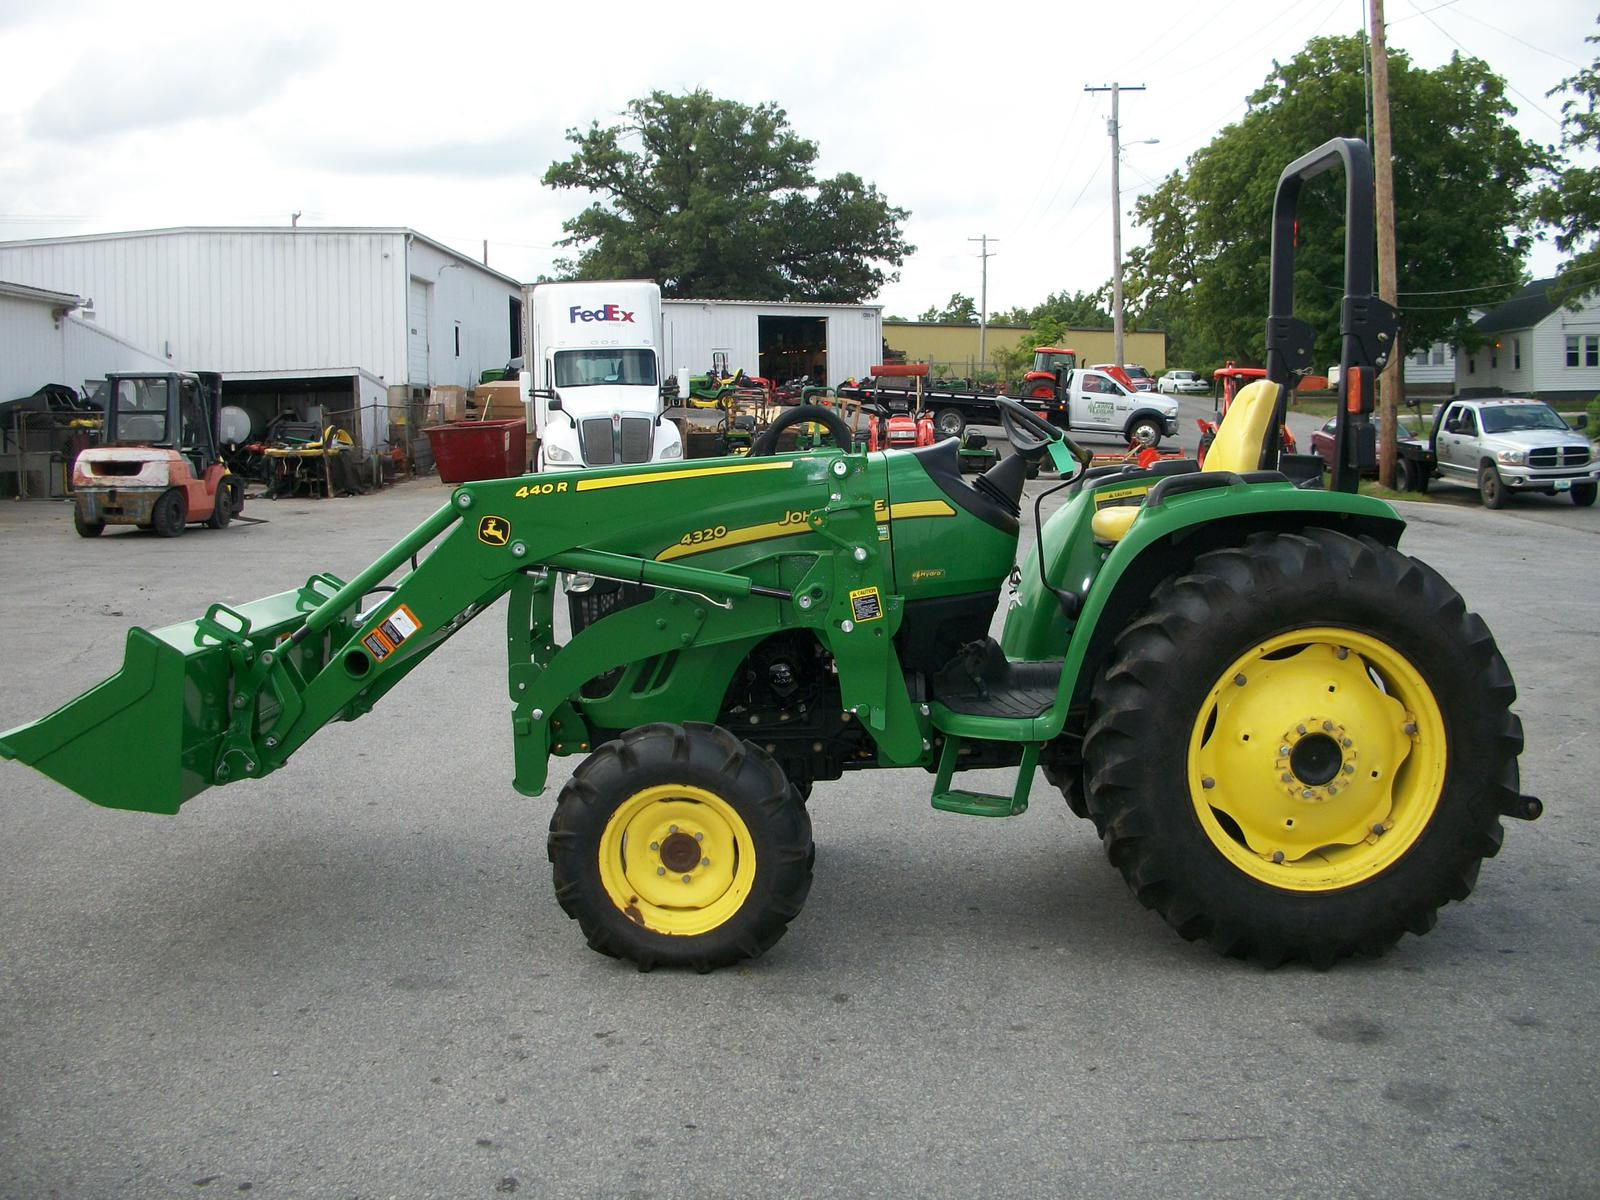 2007 John Deere 4320 Compact Tractor (48 Hp) For Sale In Columbia JD 4320  Wiring-Diagram John Deere 4320 Compact Parts Diagrams